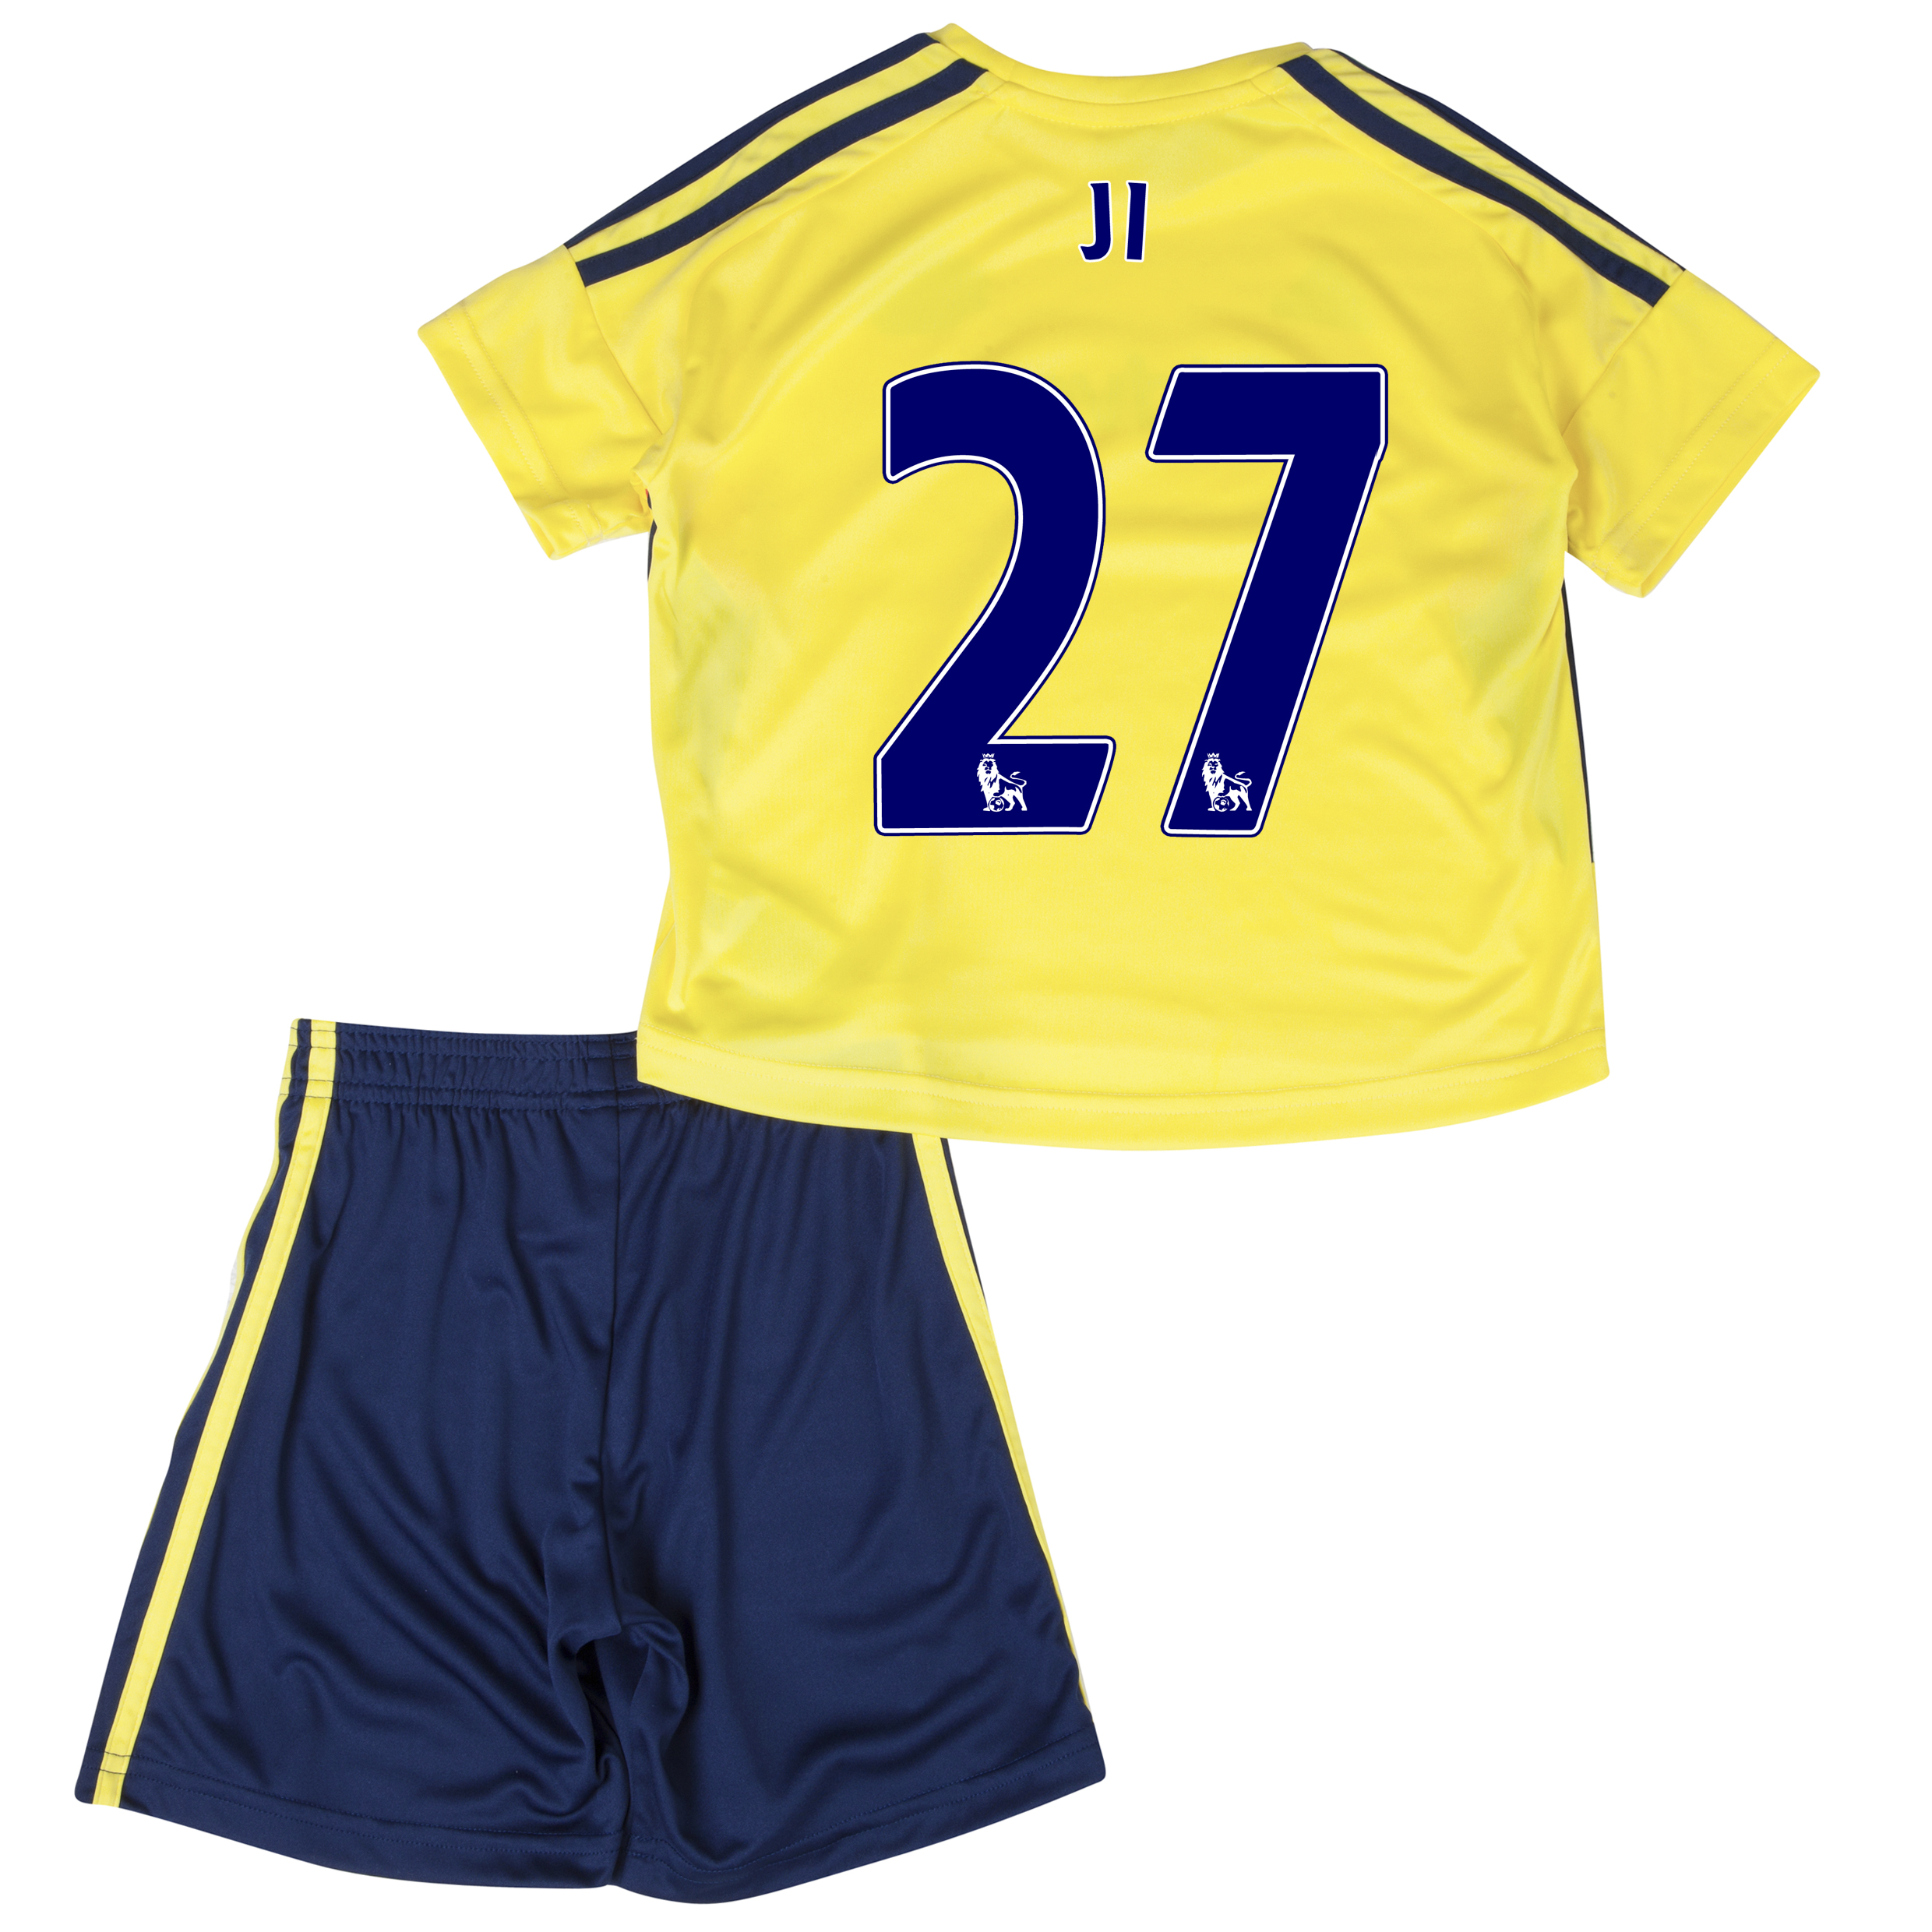 Sunderland Away Minikit 2013/14 - Infants with Ji 27 printing